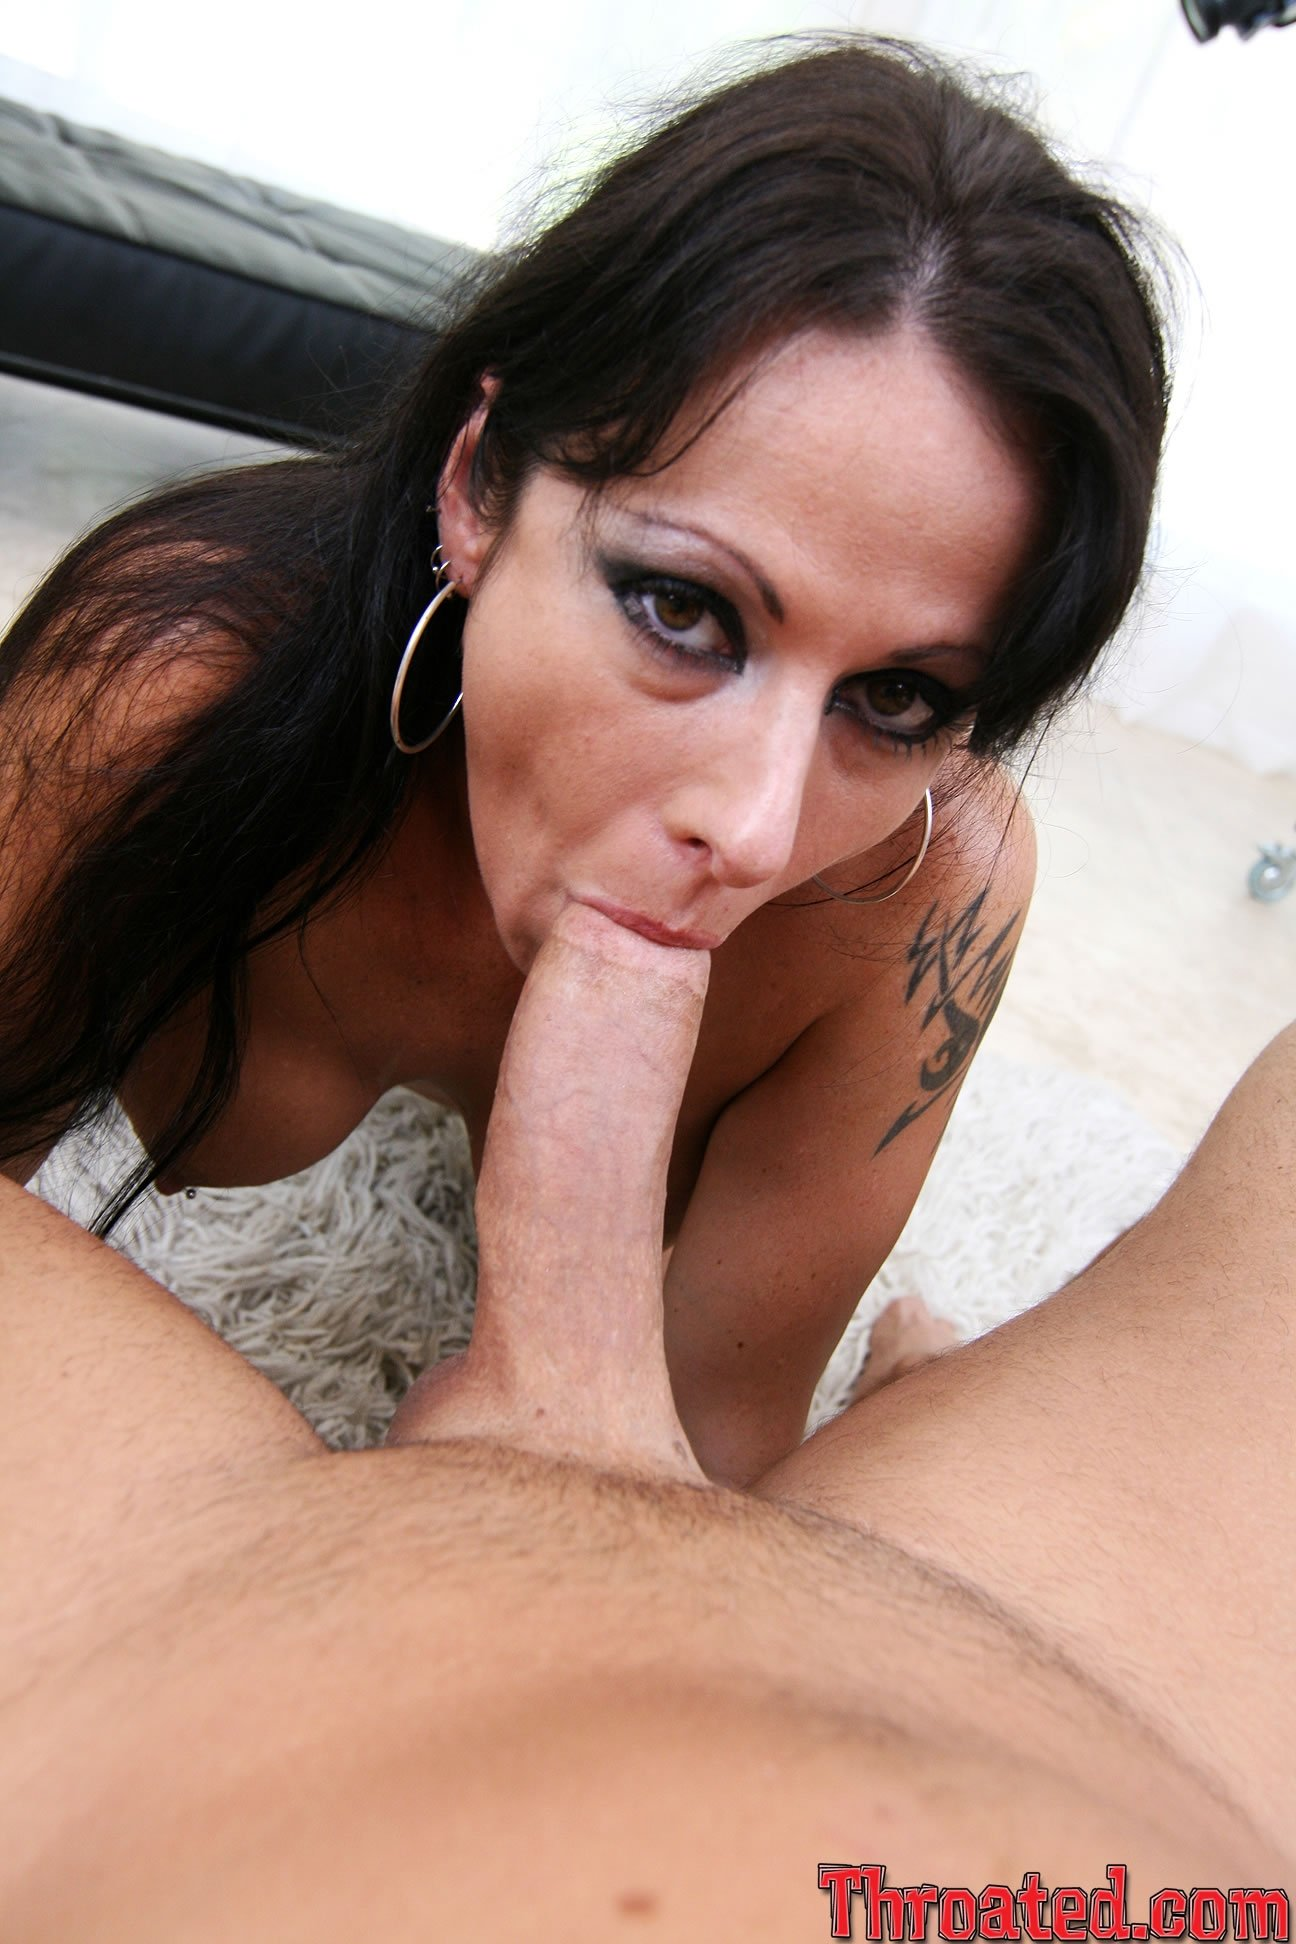 Schnuckel bea pisse Busty brunette babe Luna Star takes cock inside wet hole for a lot of cum